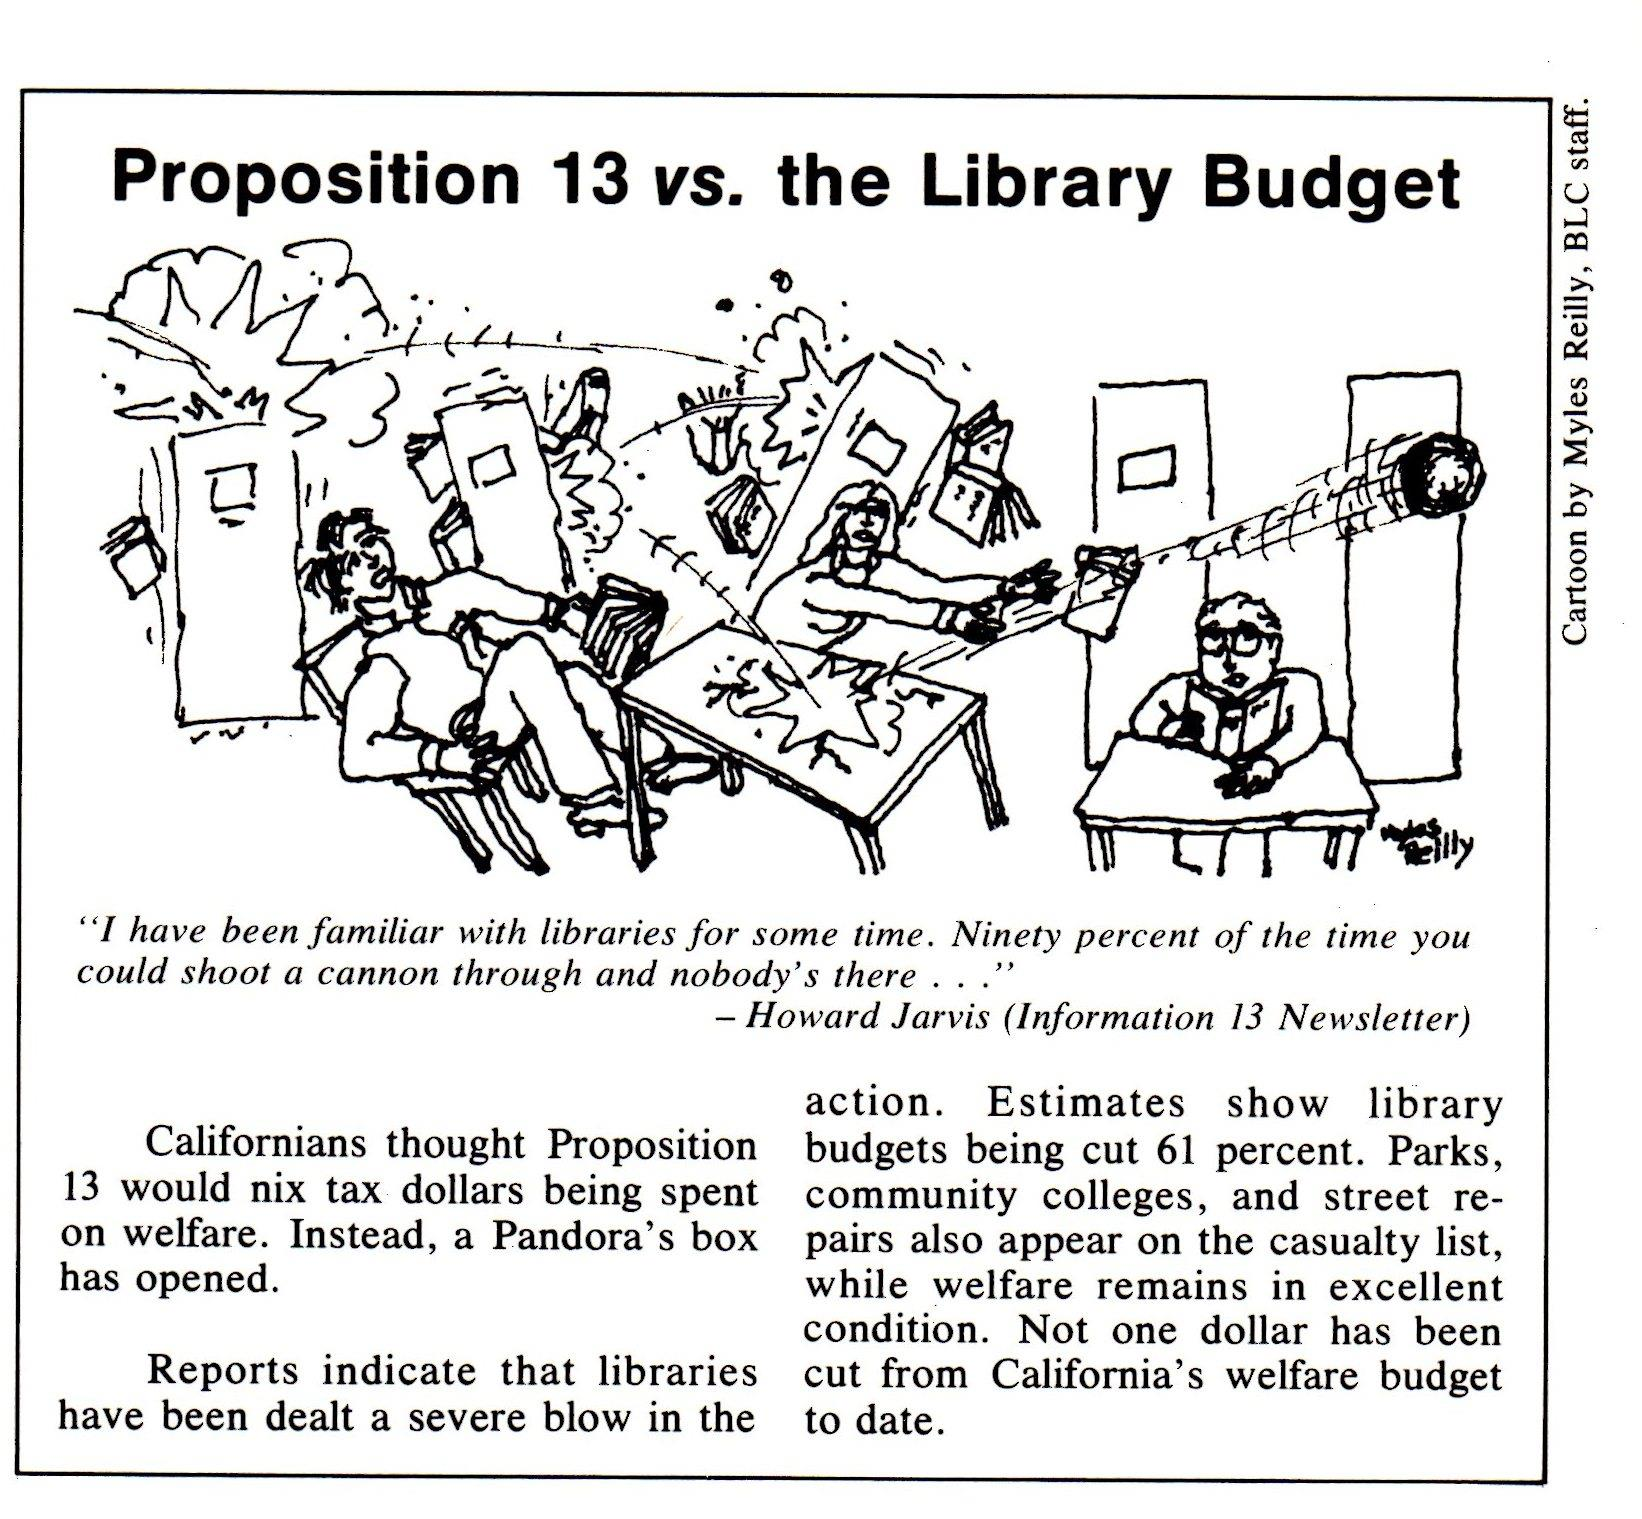 Proposition 13 vs. the library budget (cartoon with text). I have been familiar with libraries for some time. Ninety percent of the time you could shoot a cannon through and nobody's there (quote from Howard Jarvis, Information 13 newsletter). Californians thought Proposition 13 would nix tax dollars being spent on welfare. Instead, a Pandora's box has opened. Reports indicate that libraries have been dealt a severe blow in the action. Estimates show libraries being cut 61 percent. PArks, community colleges, and street repairs also appear on the casualty list, while welfare remains in excellent condition. Not one dollar has been cut from California's welfare budget to date.